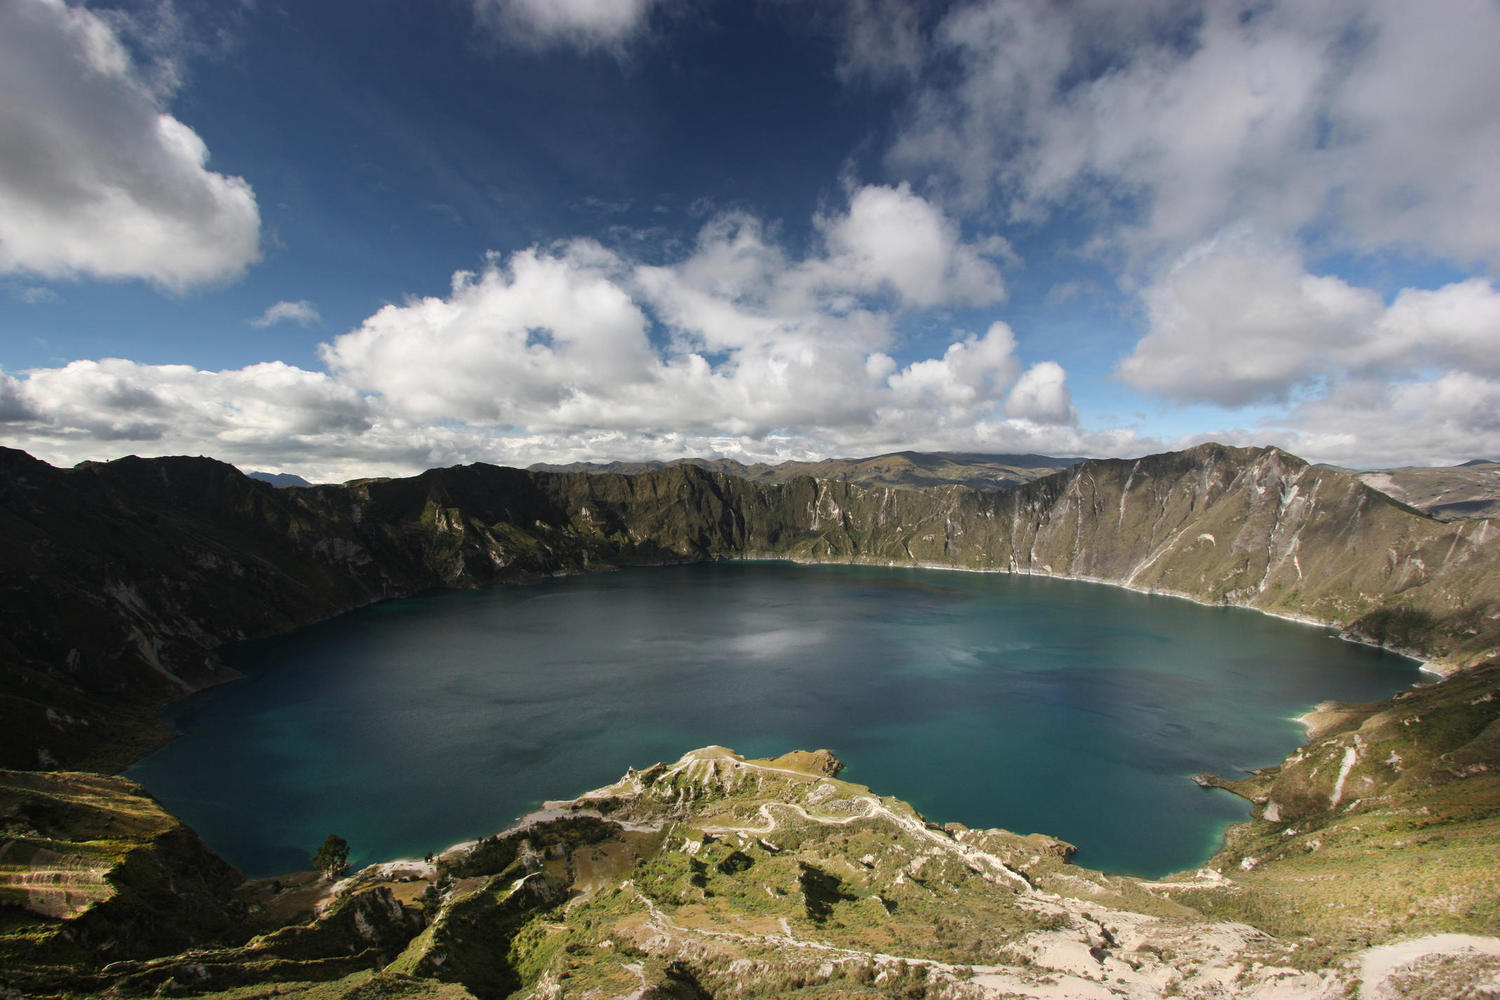 The beautiful blue waters of the Quilotoa crater lake in Ecuador